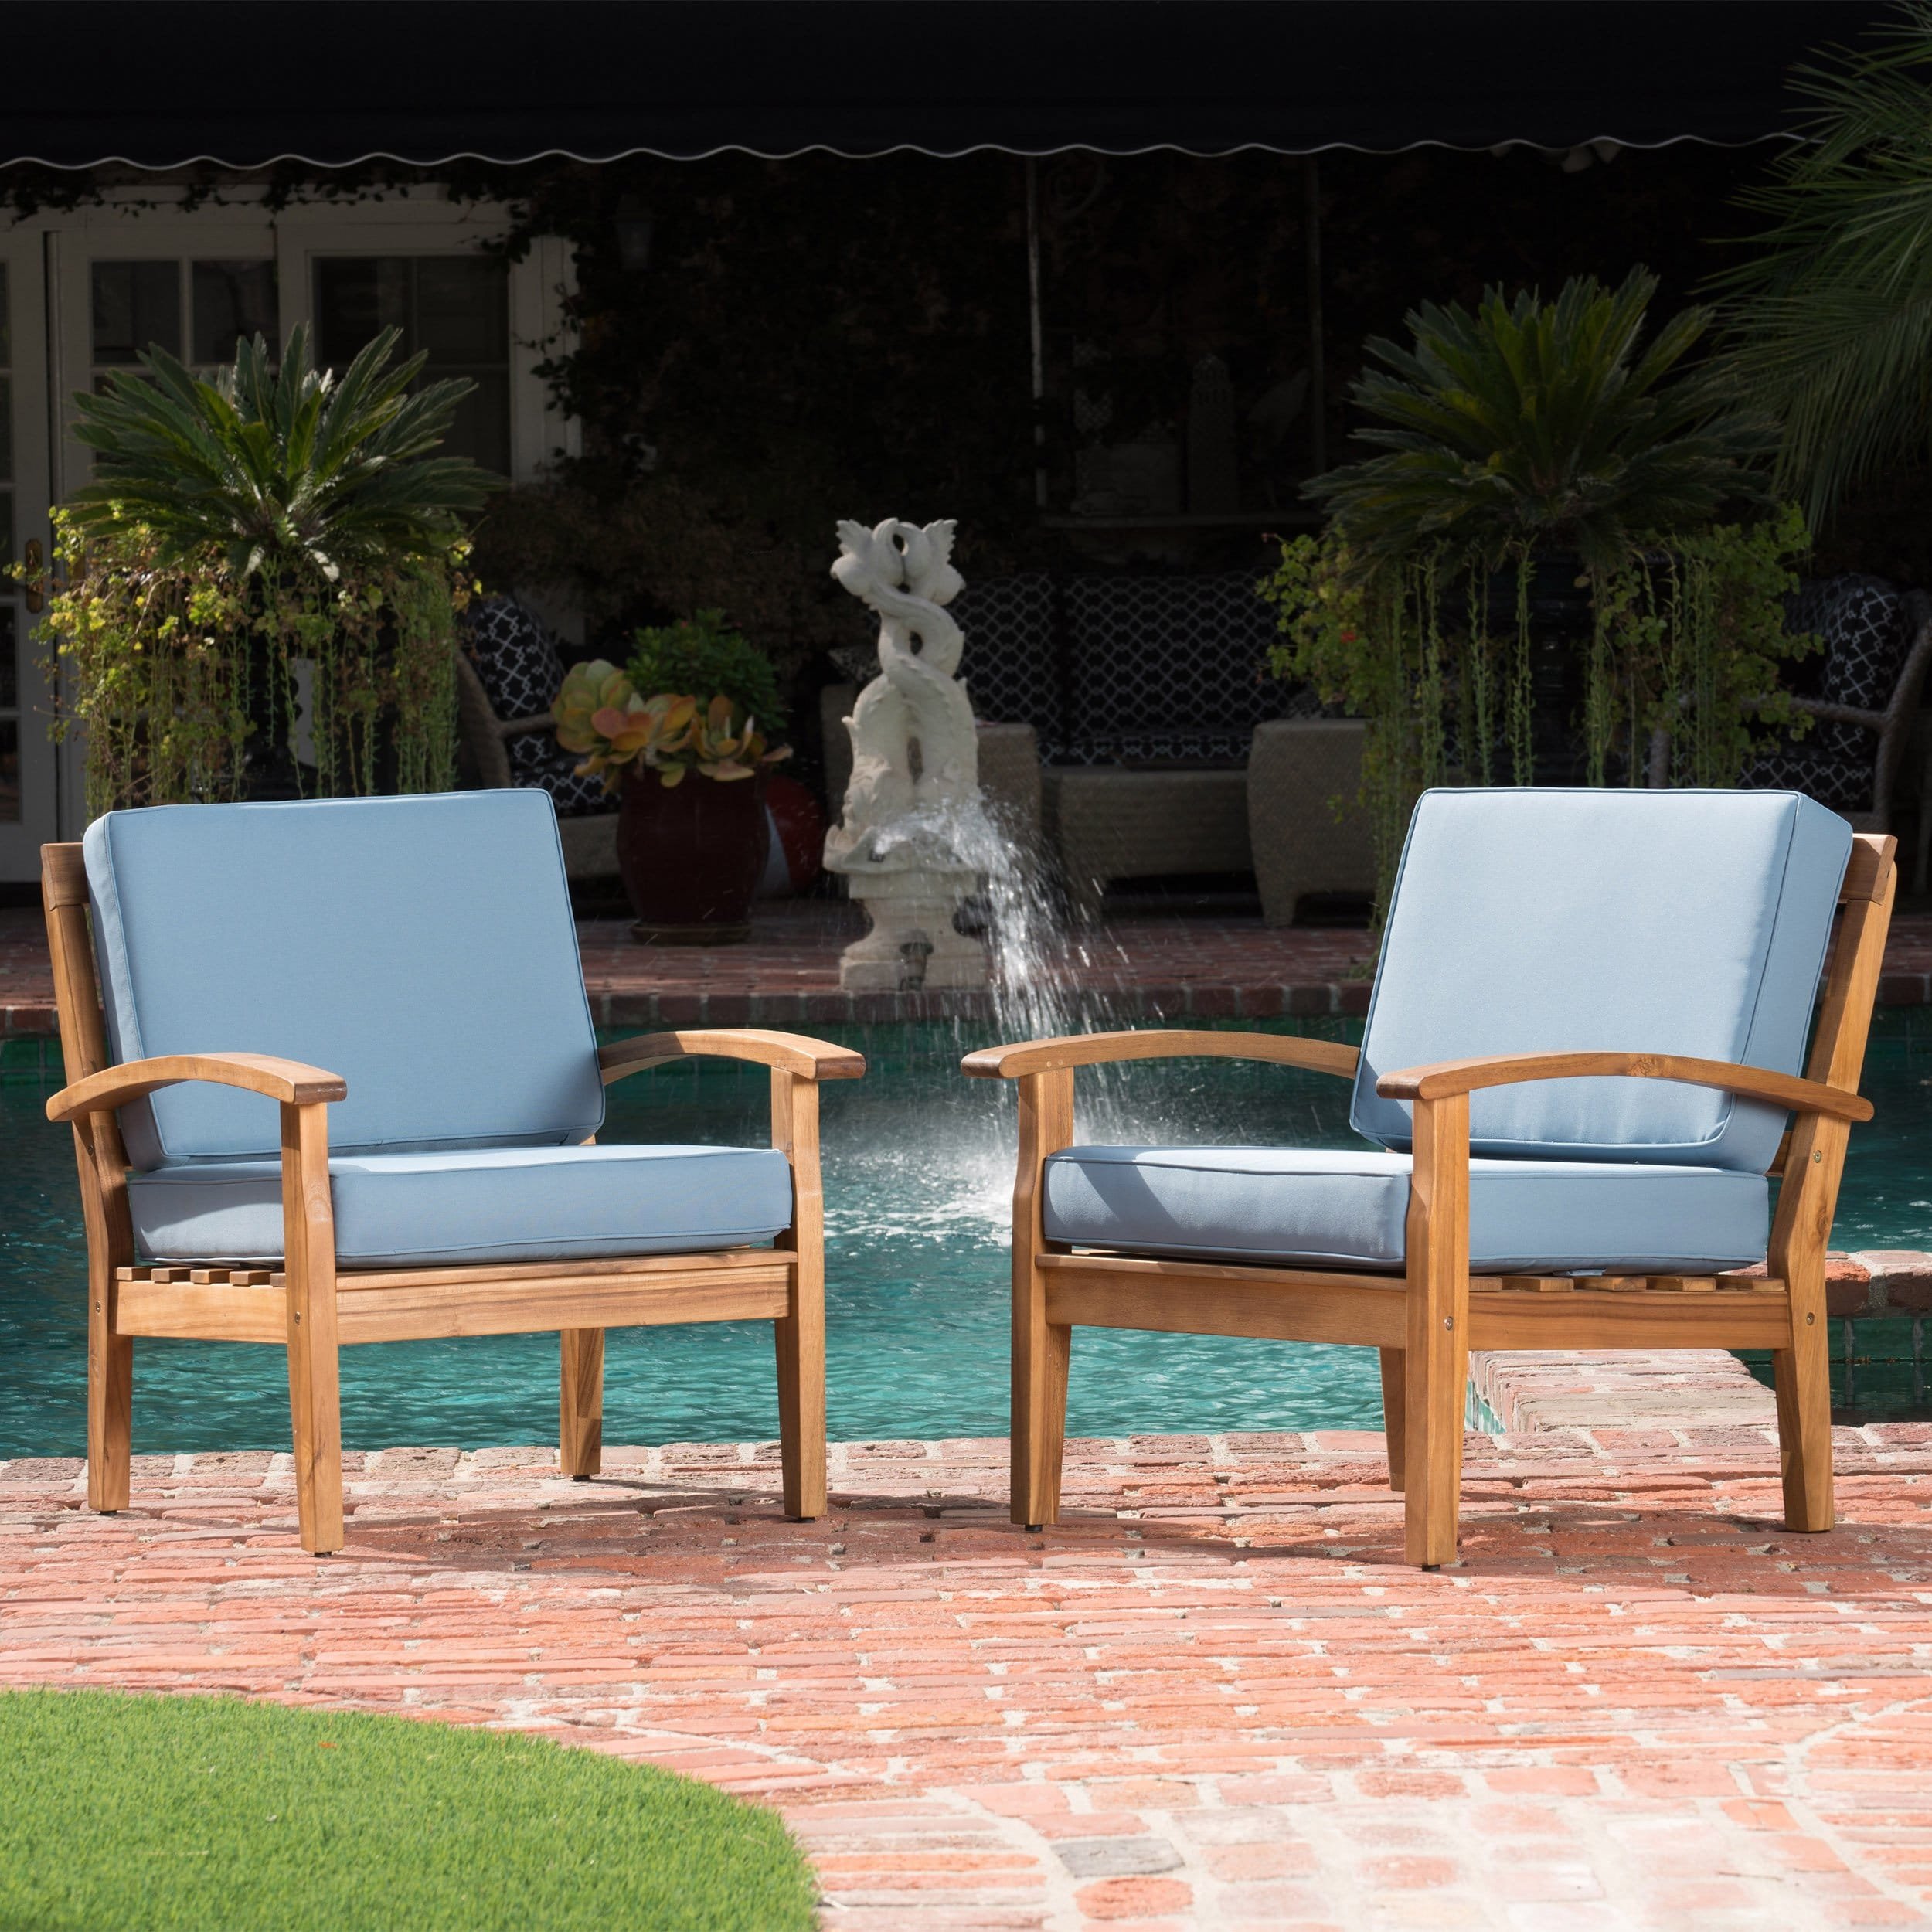 Christopher Knight Home Peyton Outdoor Wooden Club Chair (Set of 2) by